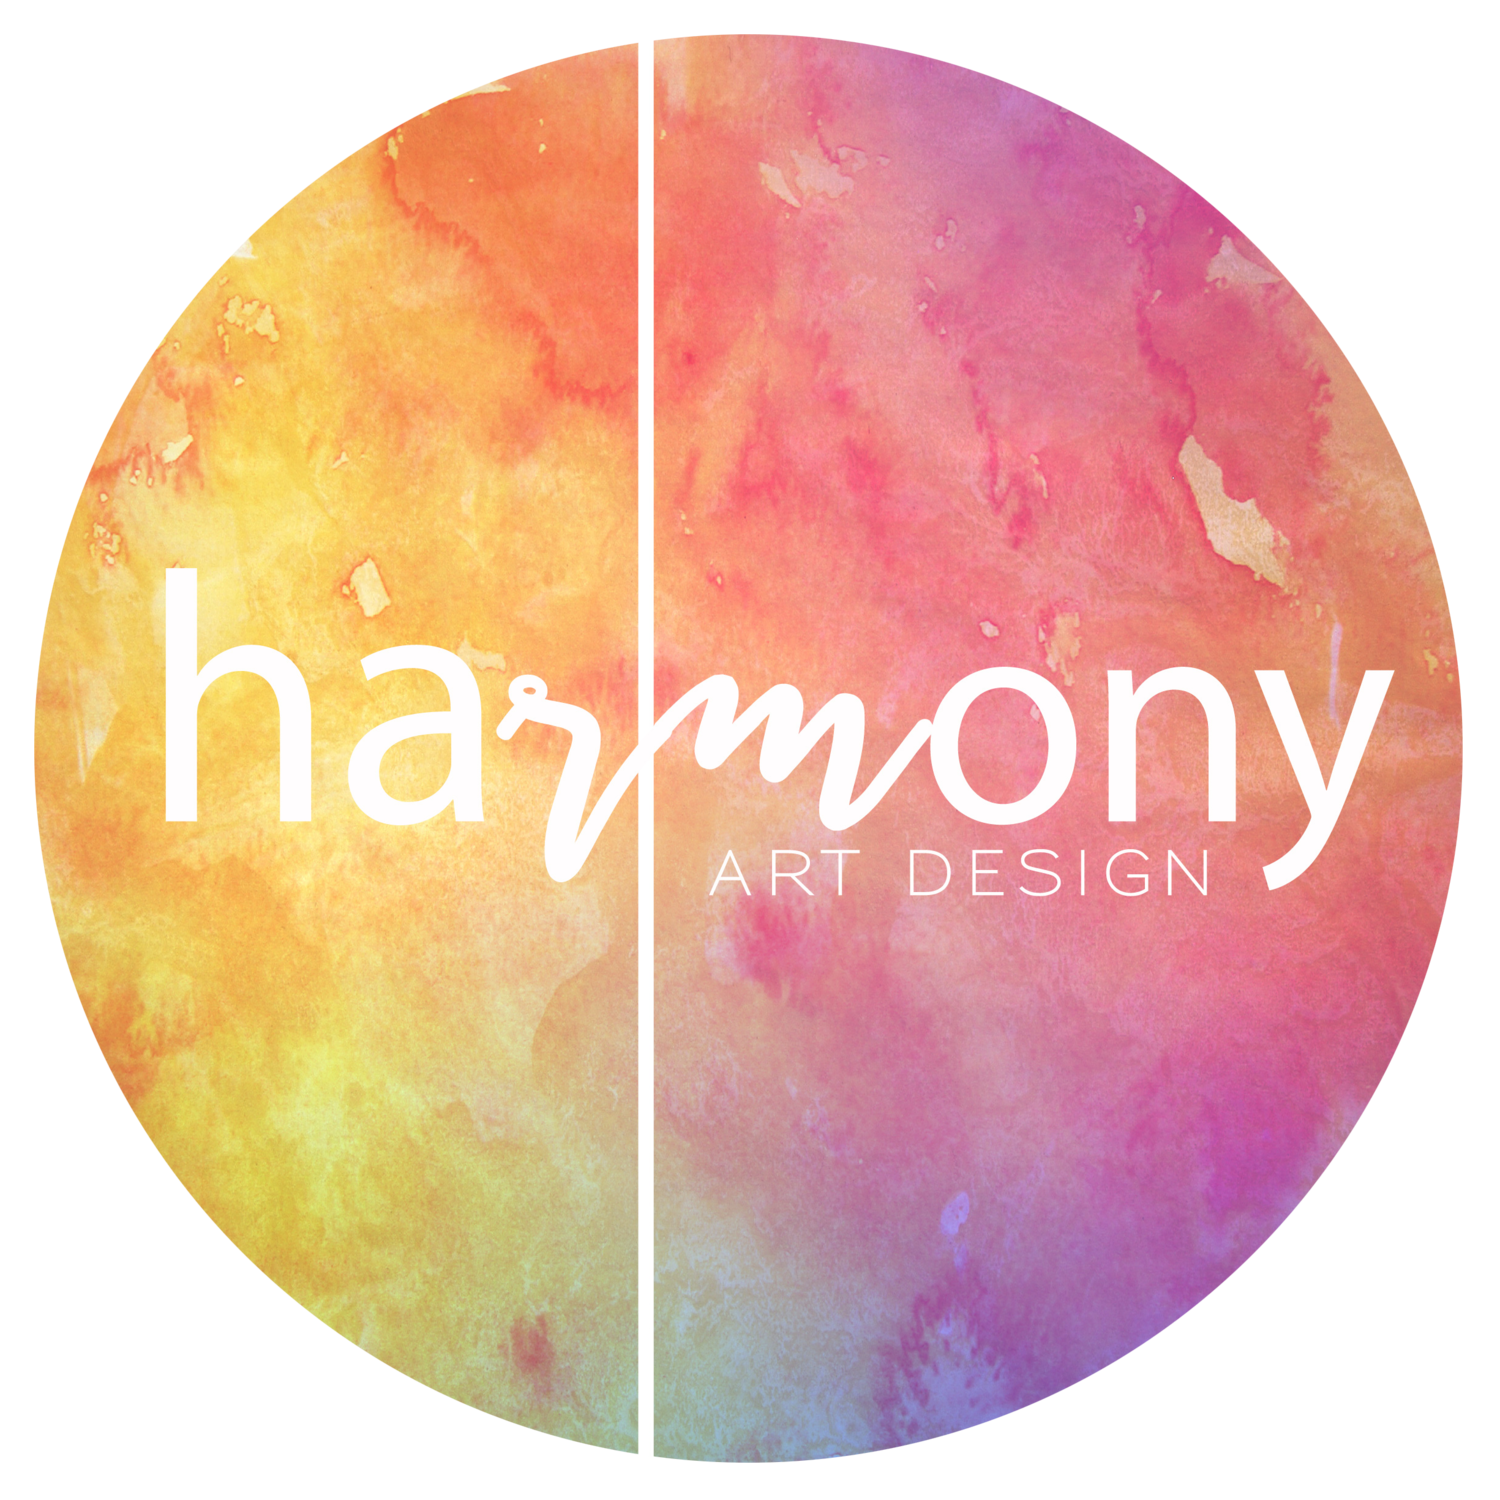 Harmony Art & Design